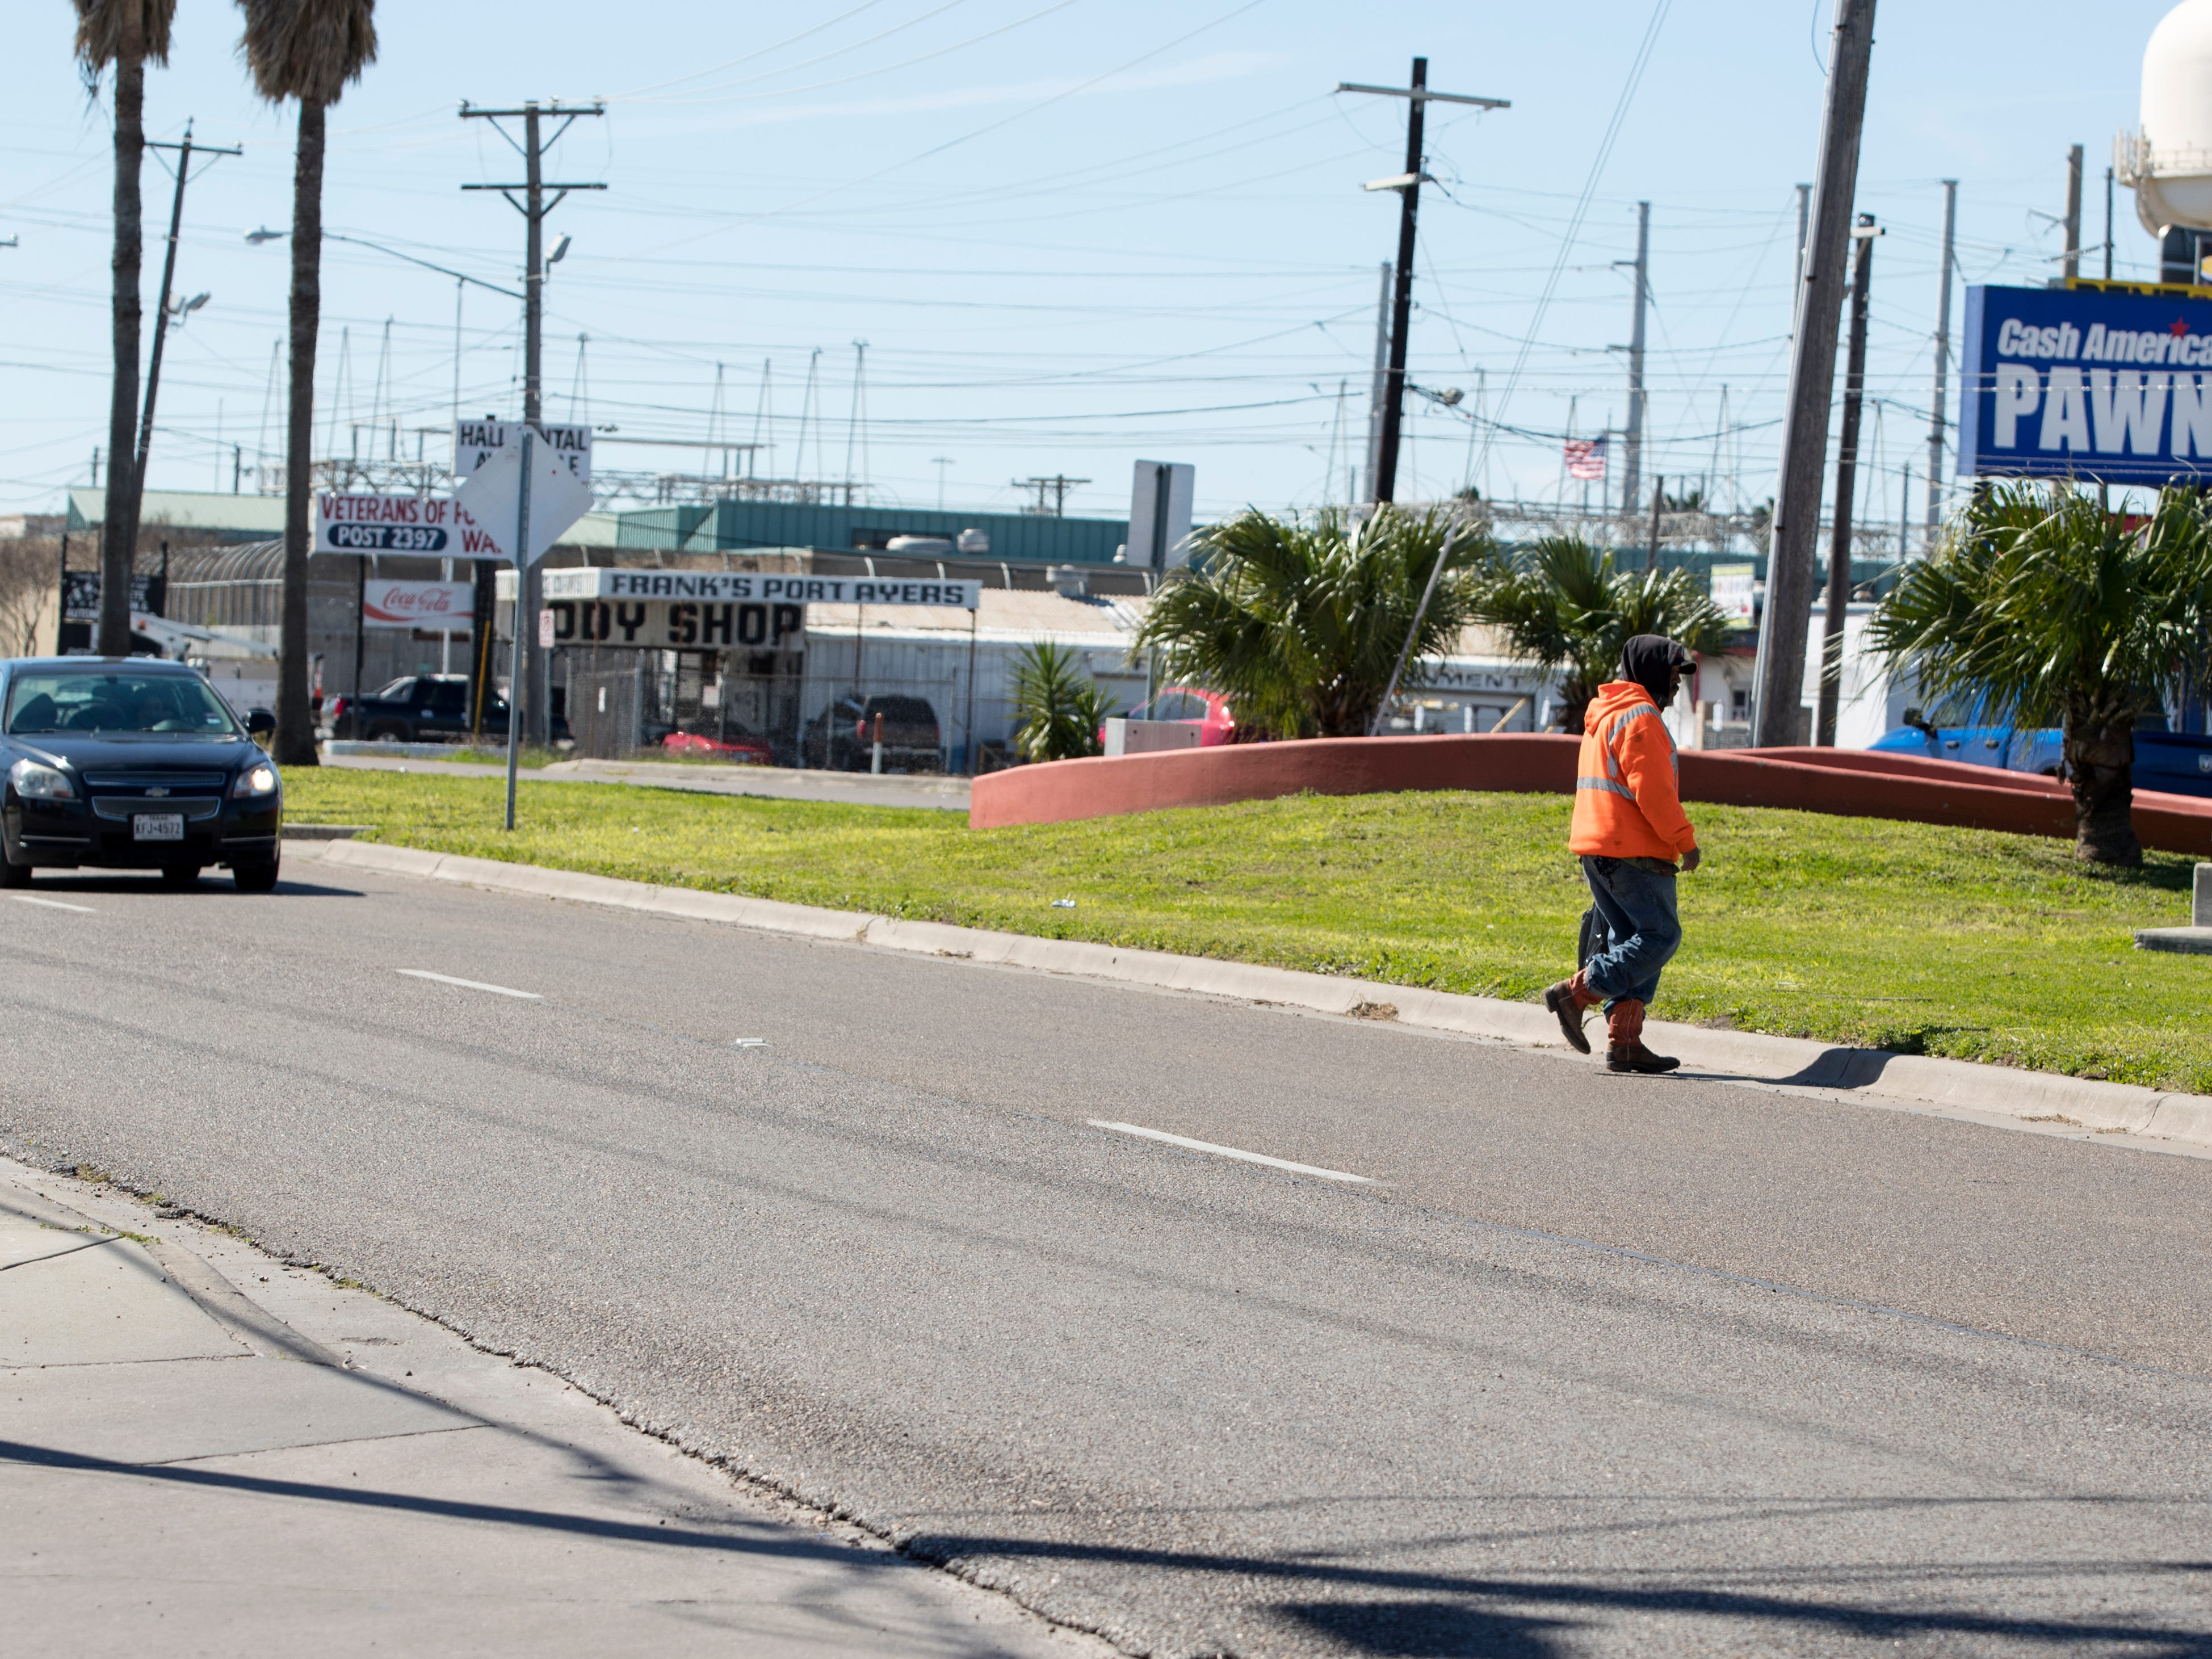 A man crosses in the middle of the street in the 4200 block of Ayers Street on January 29, 2019. Statistics from the Corpus Christi Police Department show that a high number of auto-pedestrian accidents take place between the blocks of 4100 to 4900 Ayers Street.